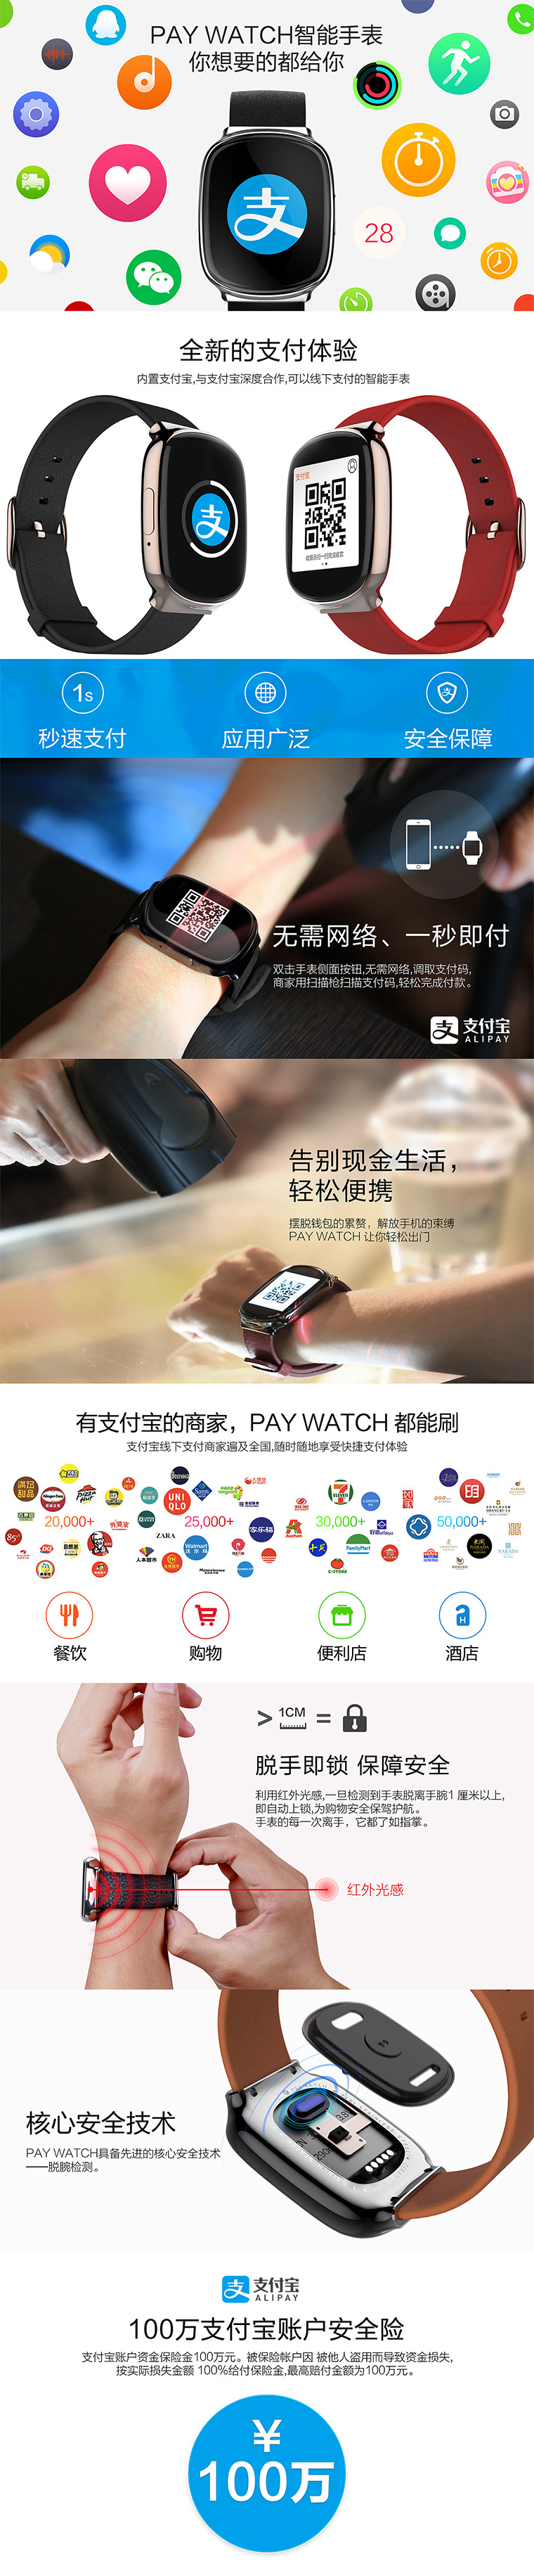 alibaba-pay-watch